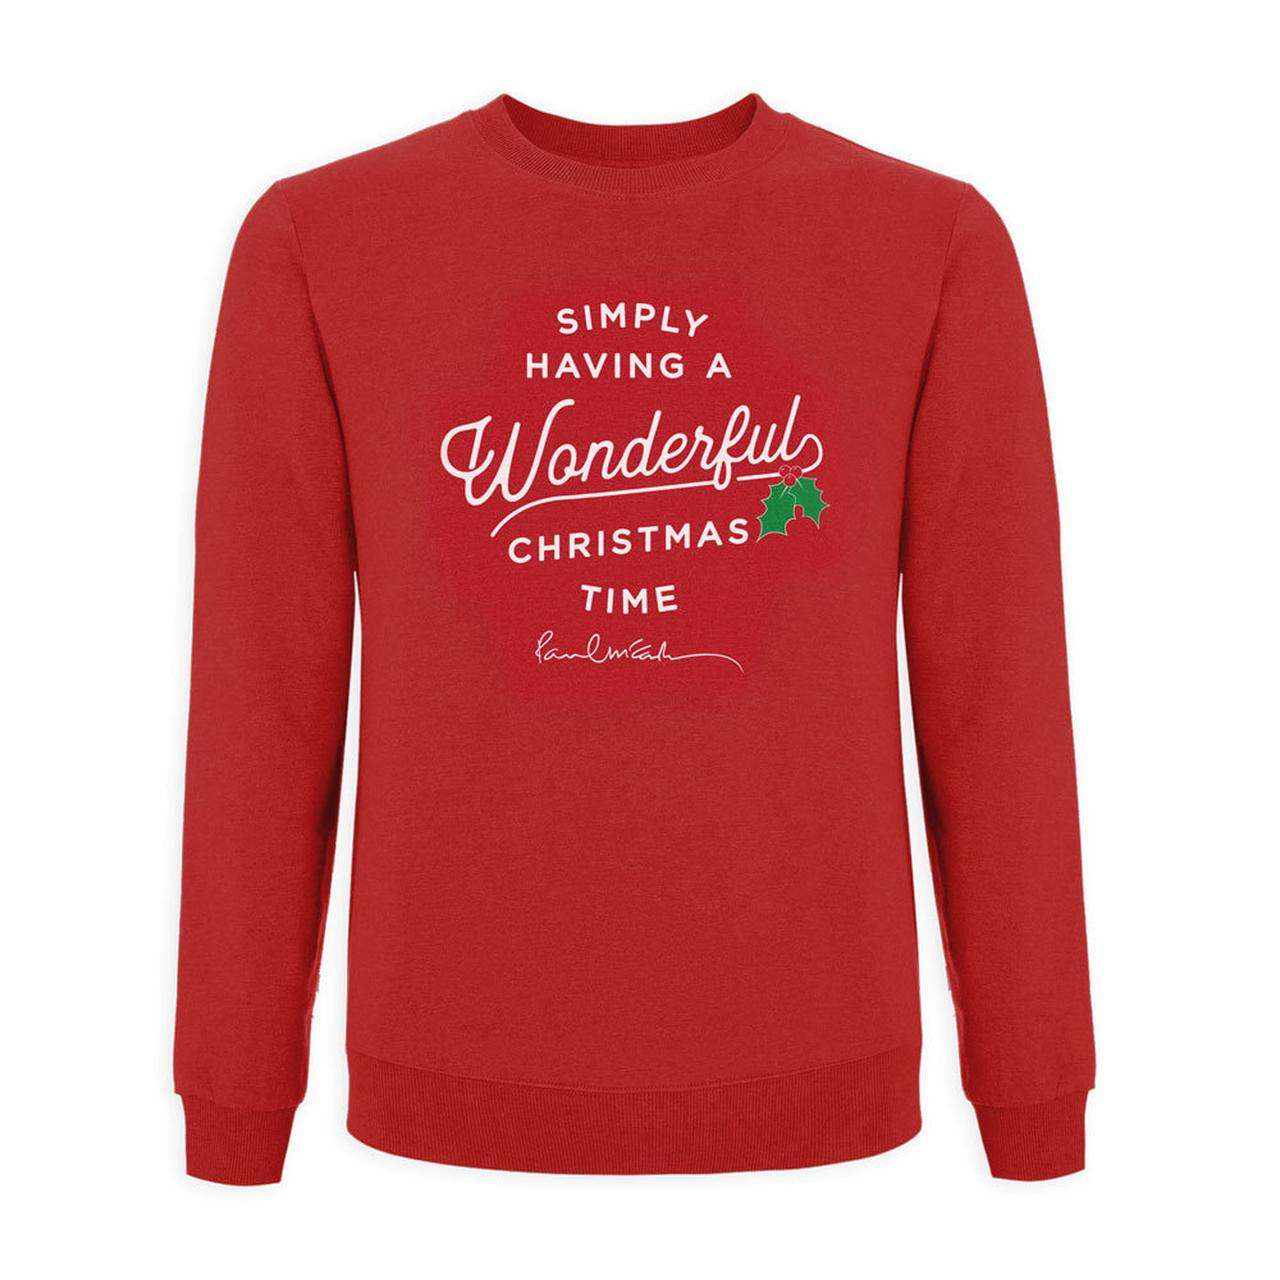 paul mccartney wonderful christmas time sweatshirt tap to expand - Wonderful Christmas Time